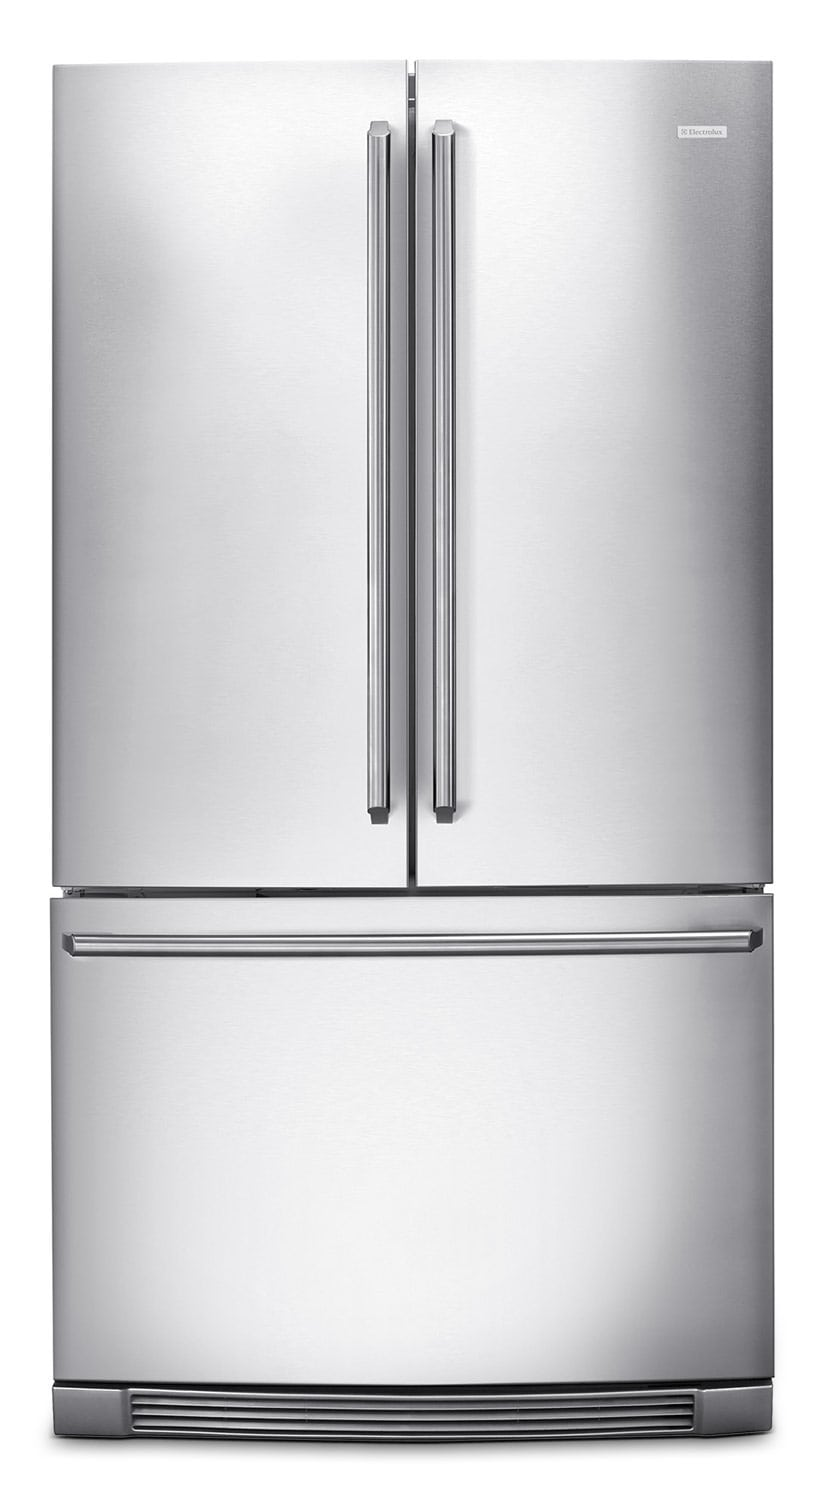 [Electrolux Stainless Steel Counter-Depth French Door Refrigerator (22.55 Cu. Ft.) - EI23BC30KS]